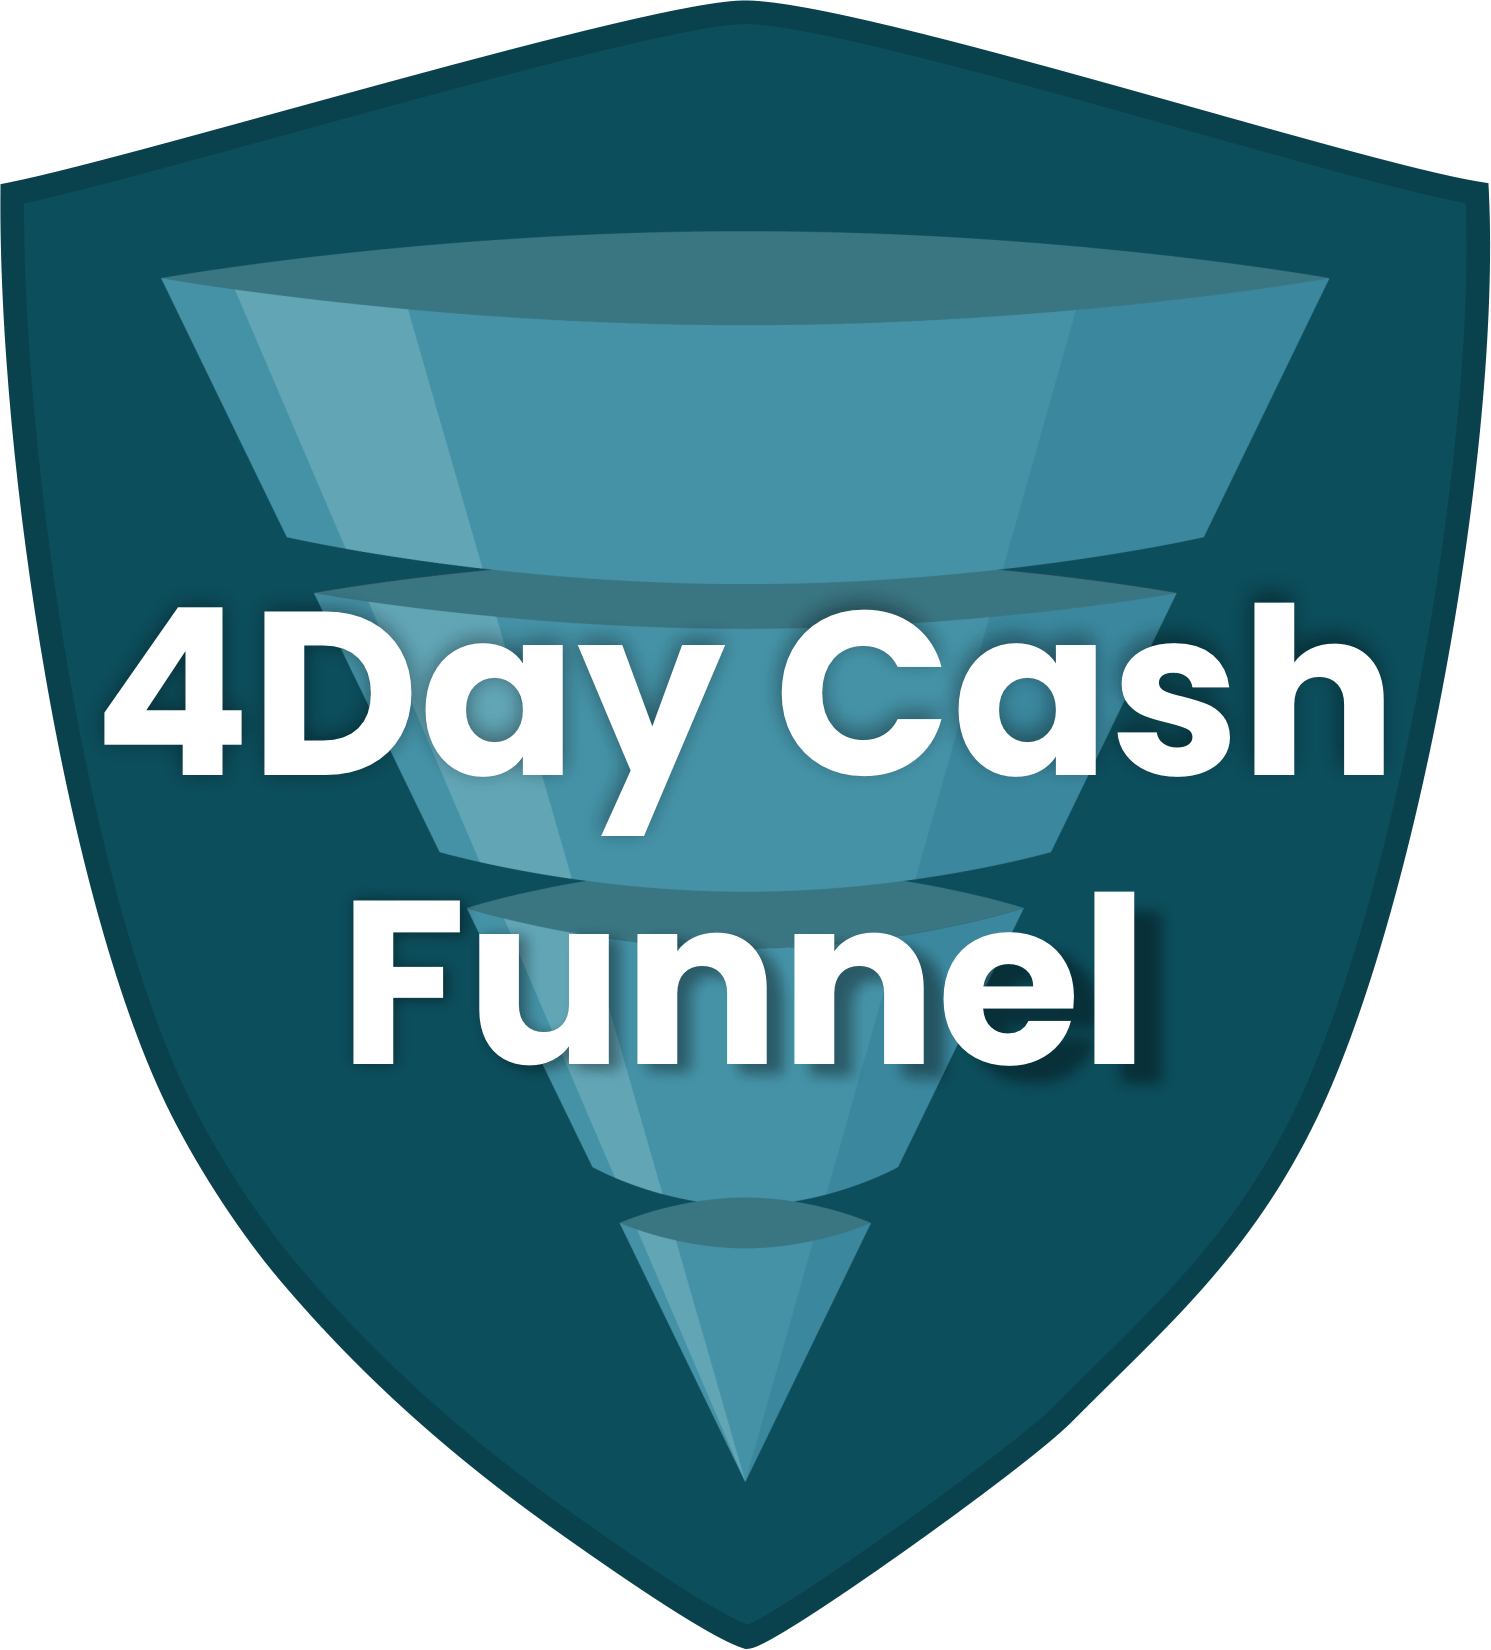 4Day Cash Funnel